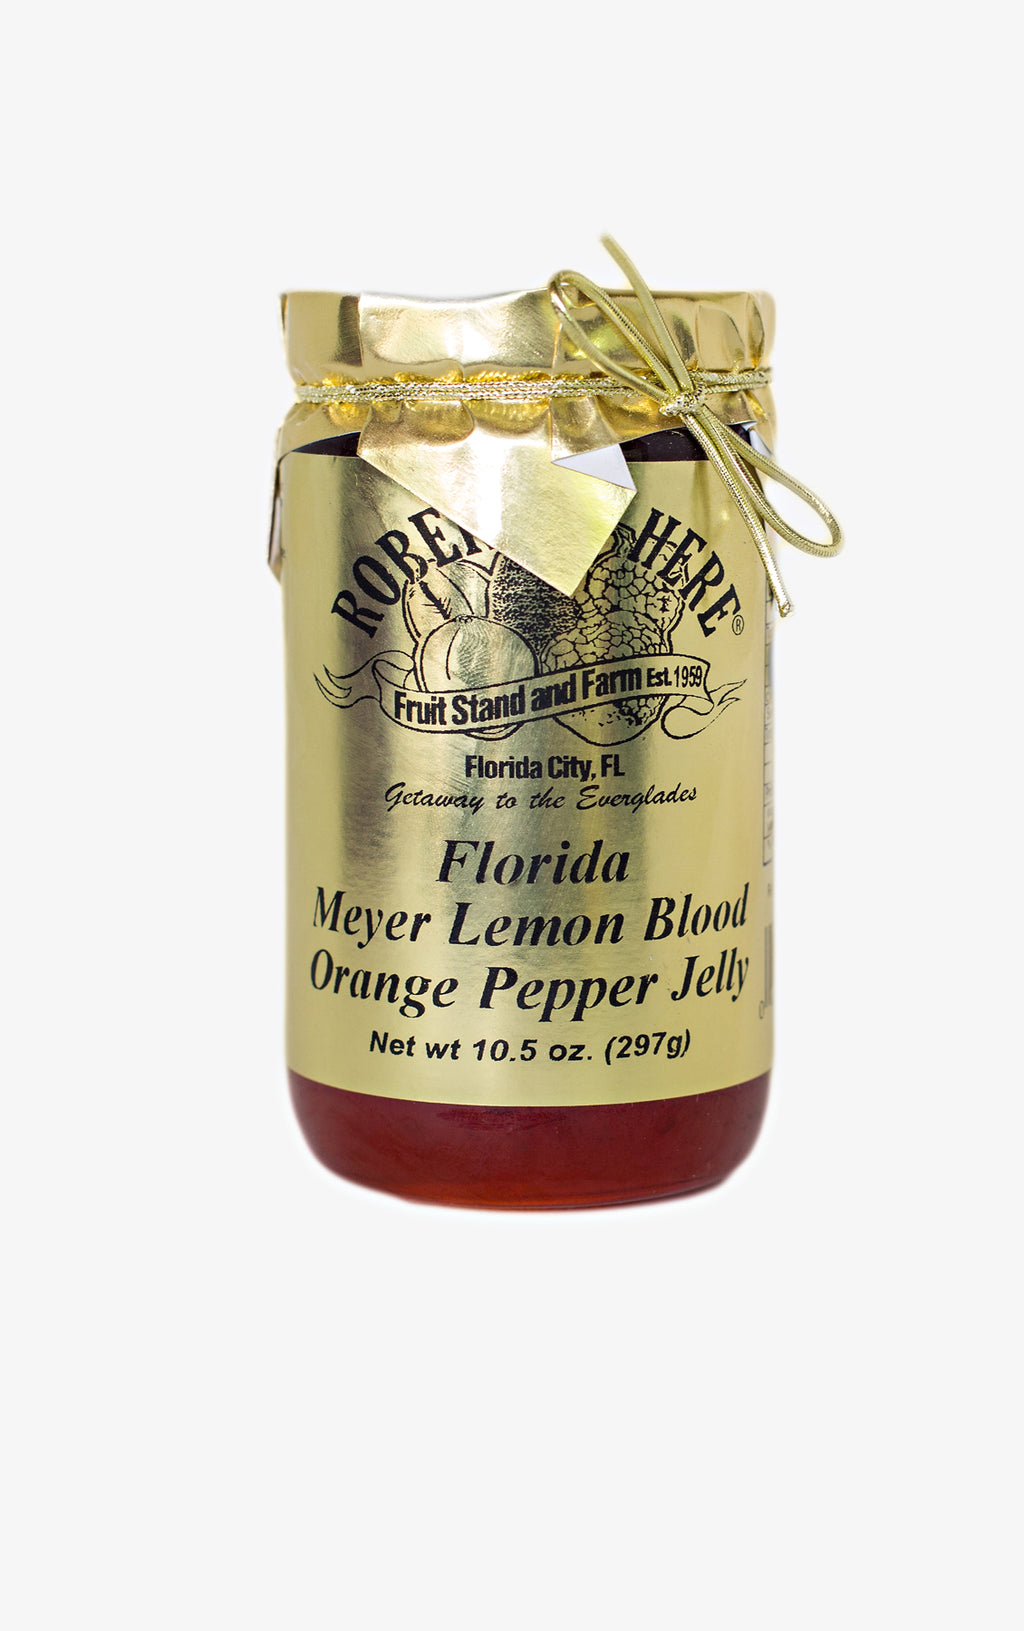 Meyer Lemon Blood Orange Pepper Jelly